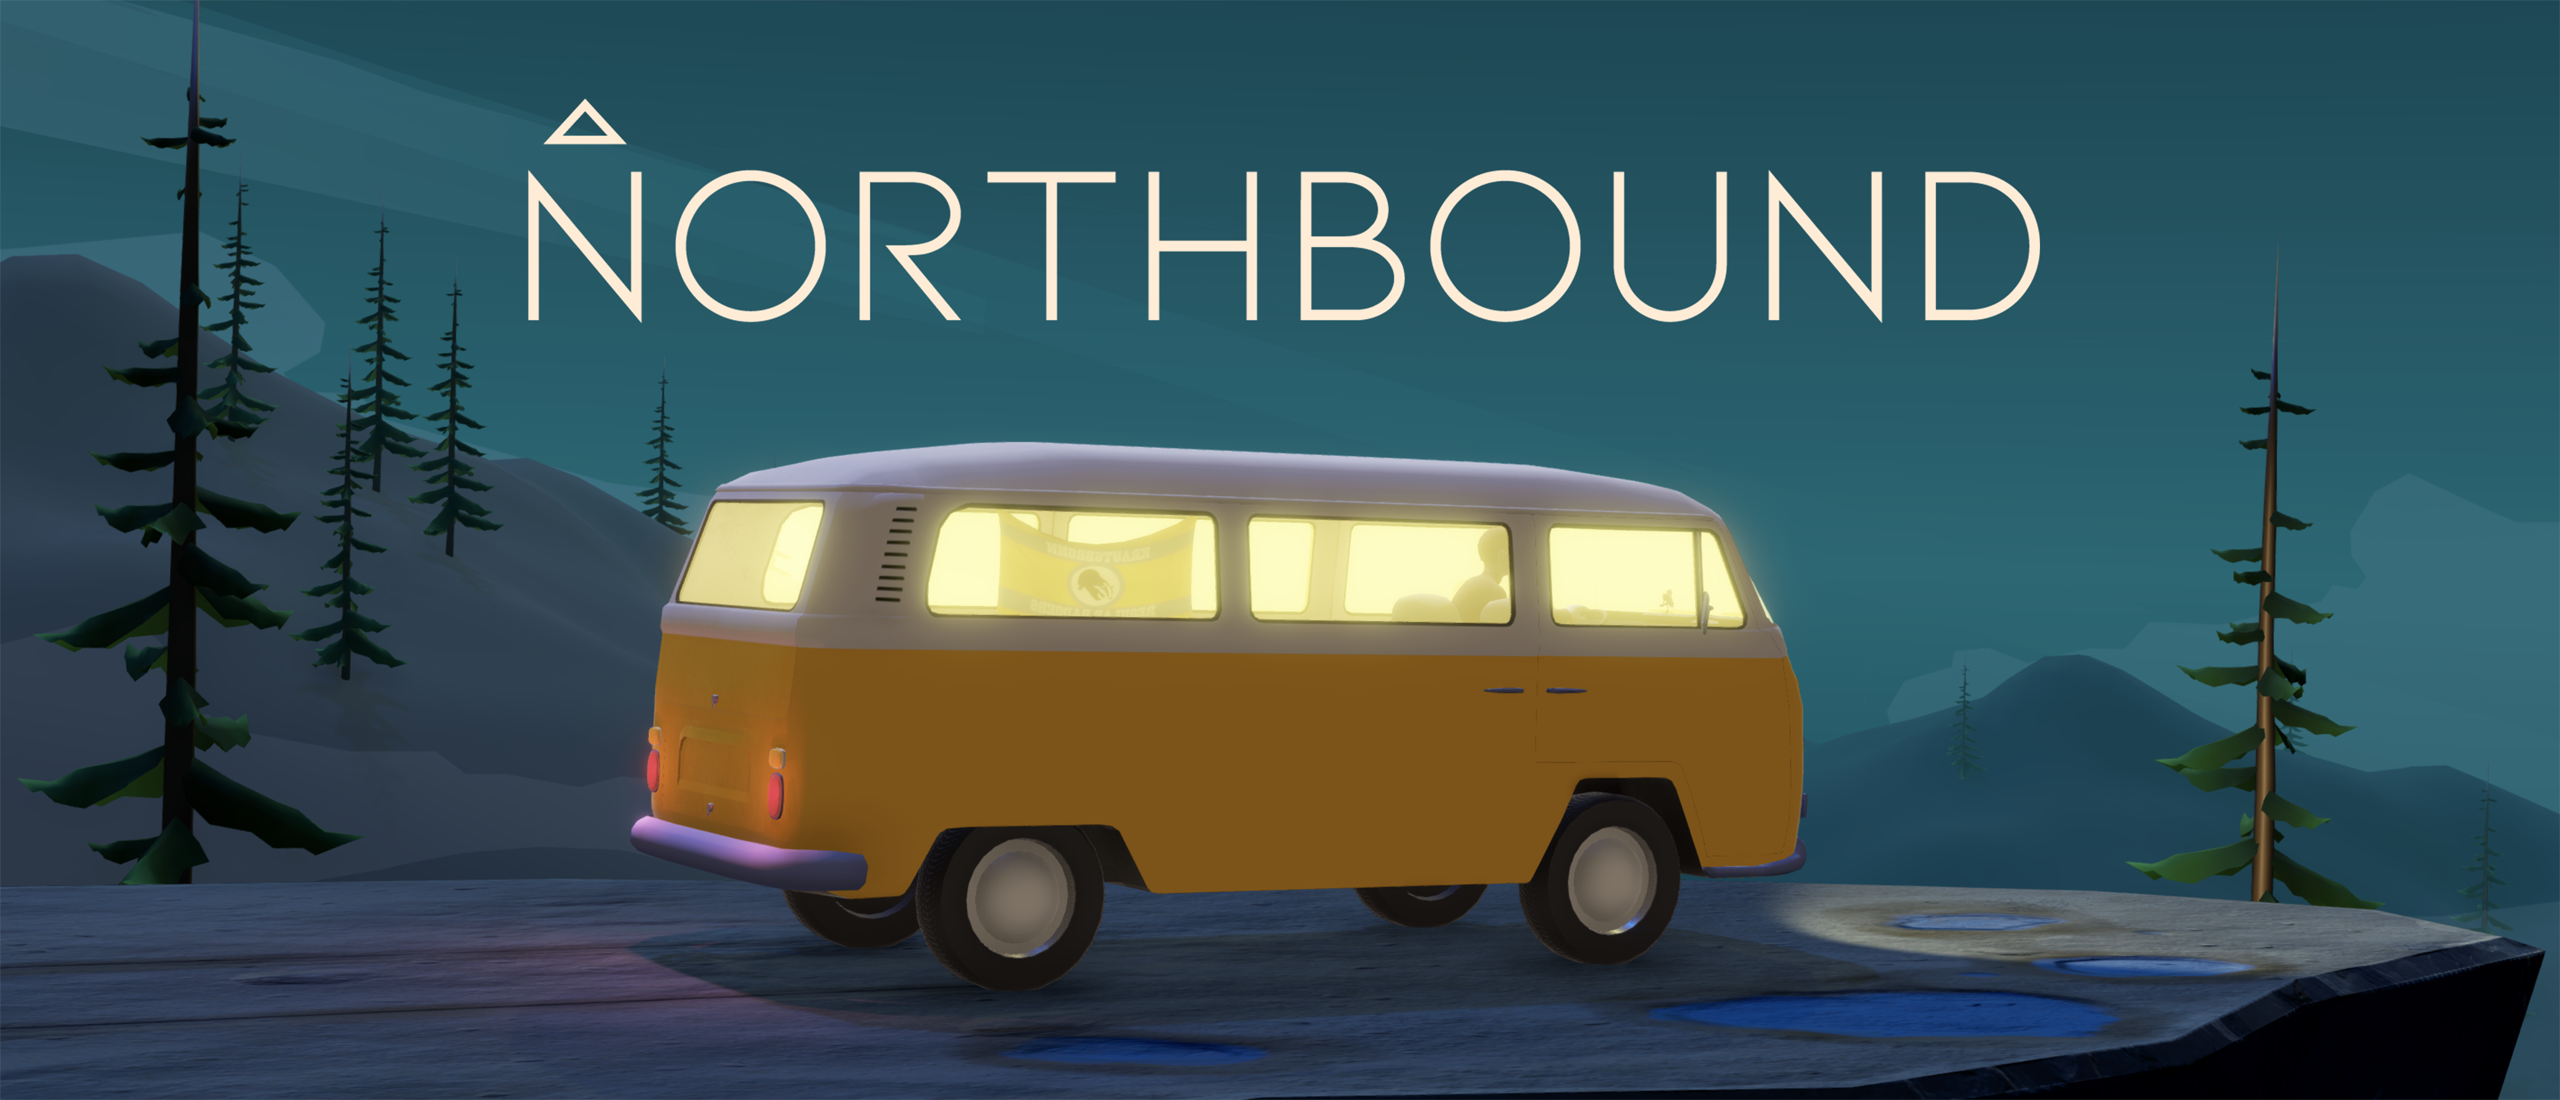 Northbound - Long Road Ahead